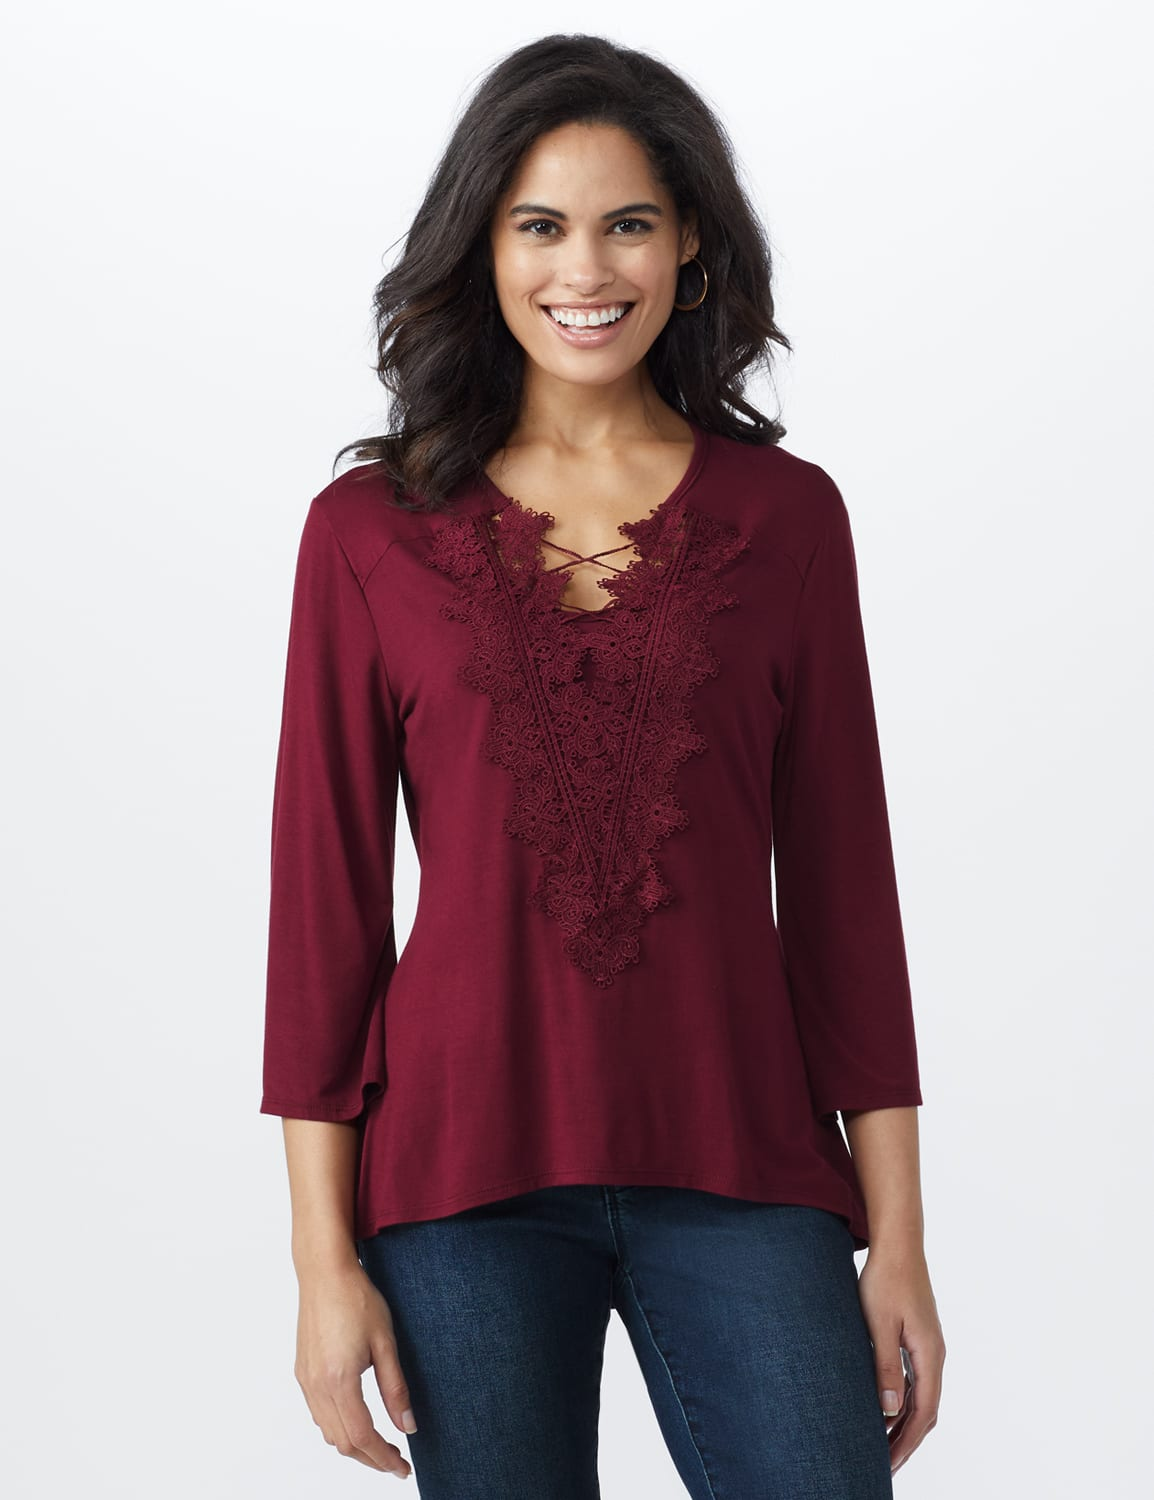 Bell Sleeve Crochet Trim V-Neck Knit Top - Misses - Ruby - Front